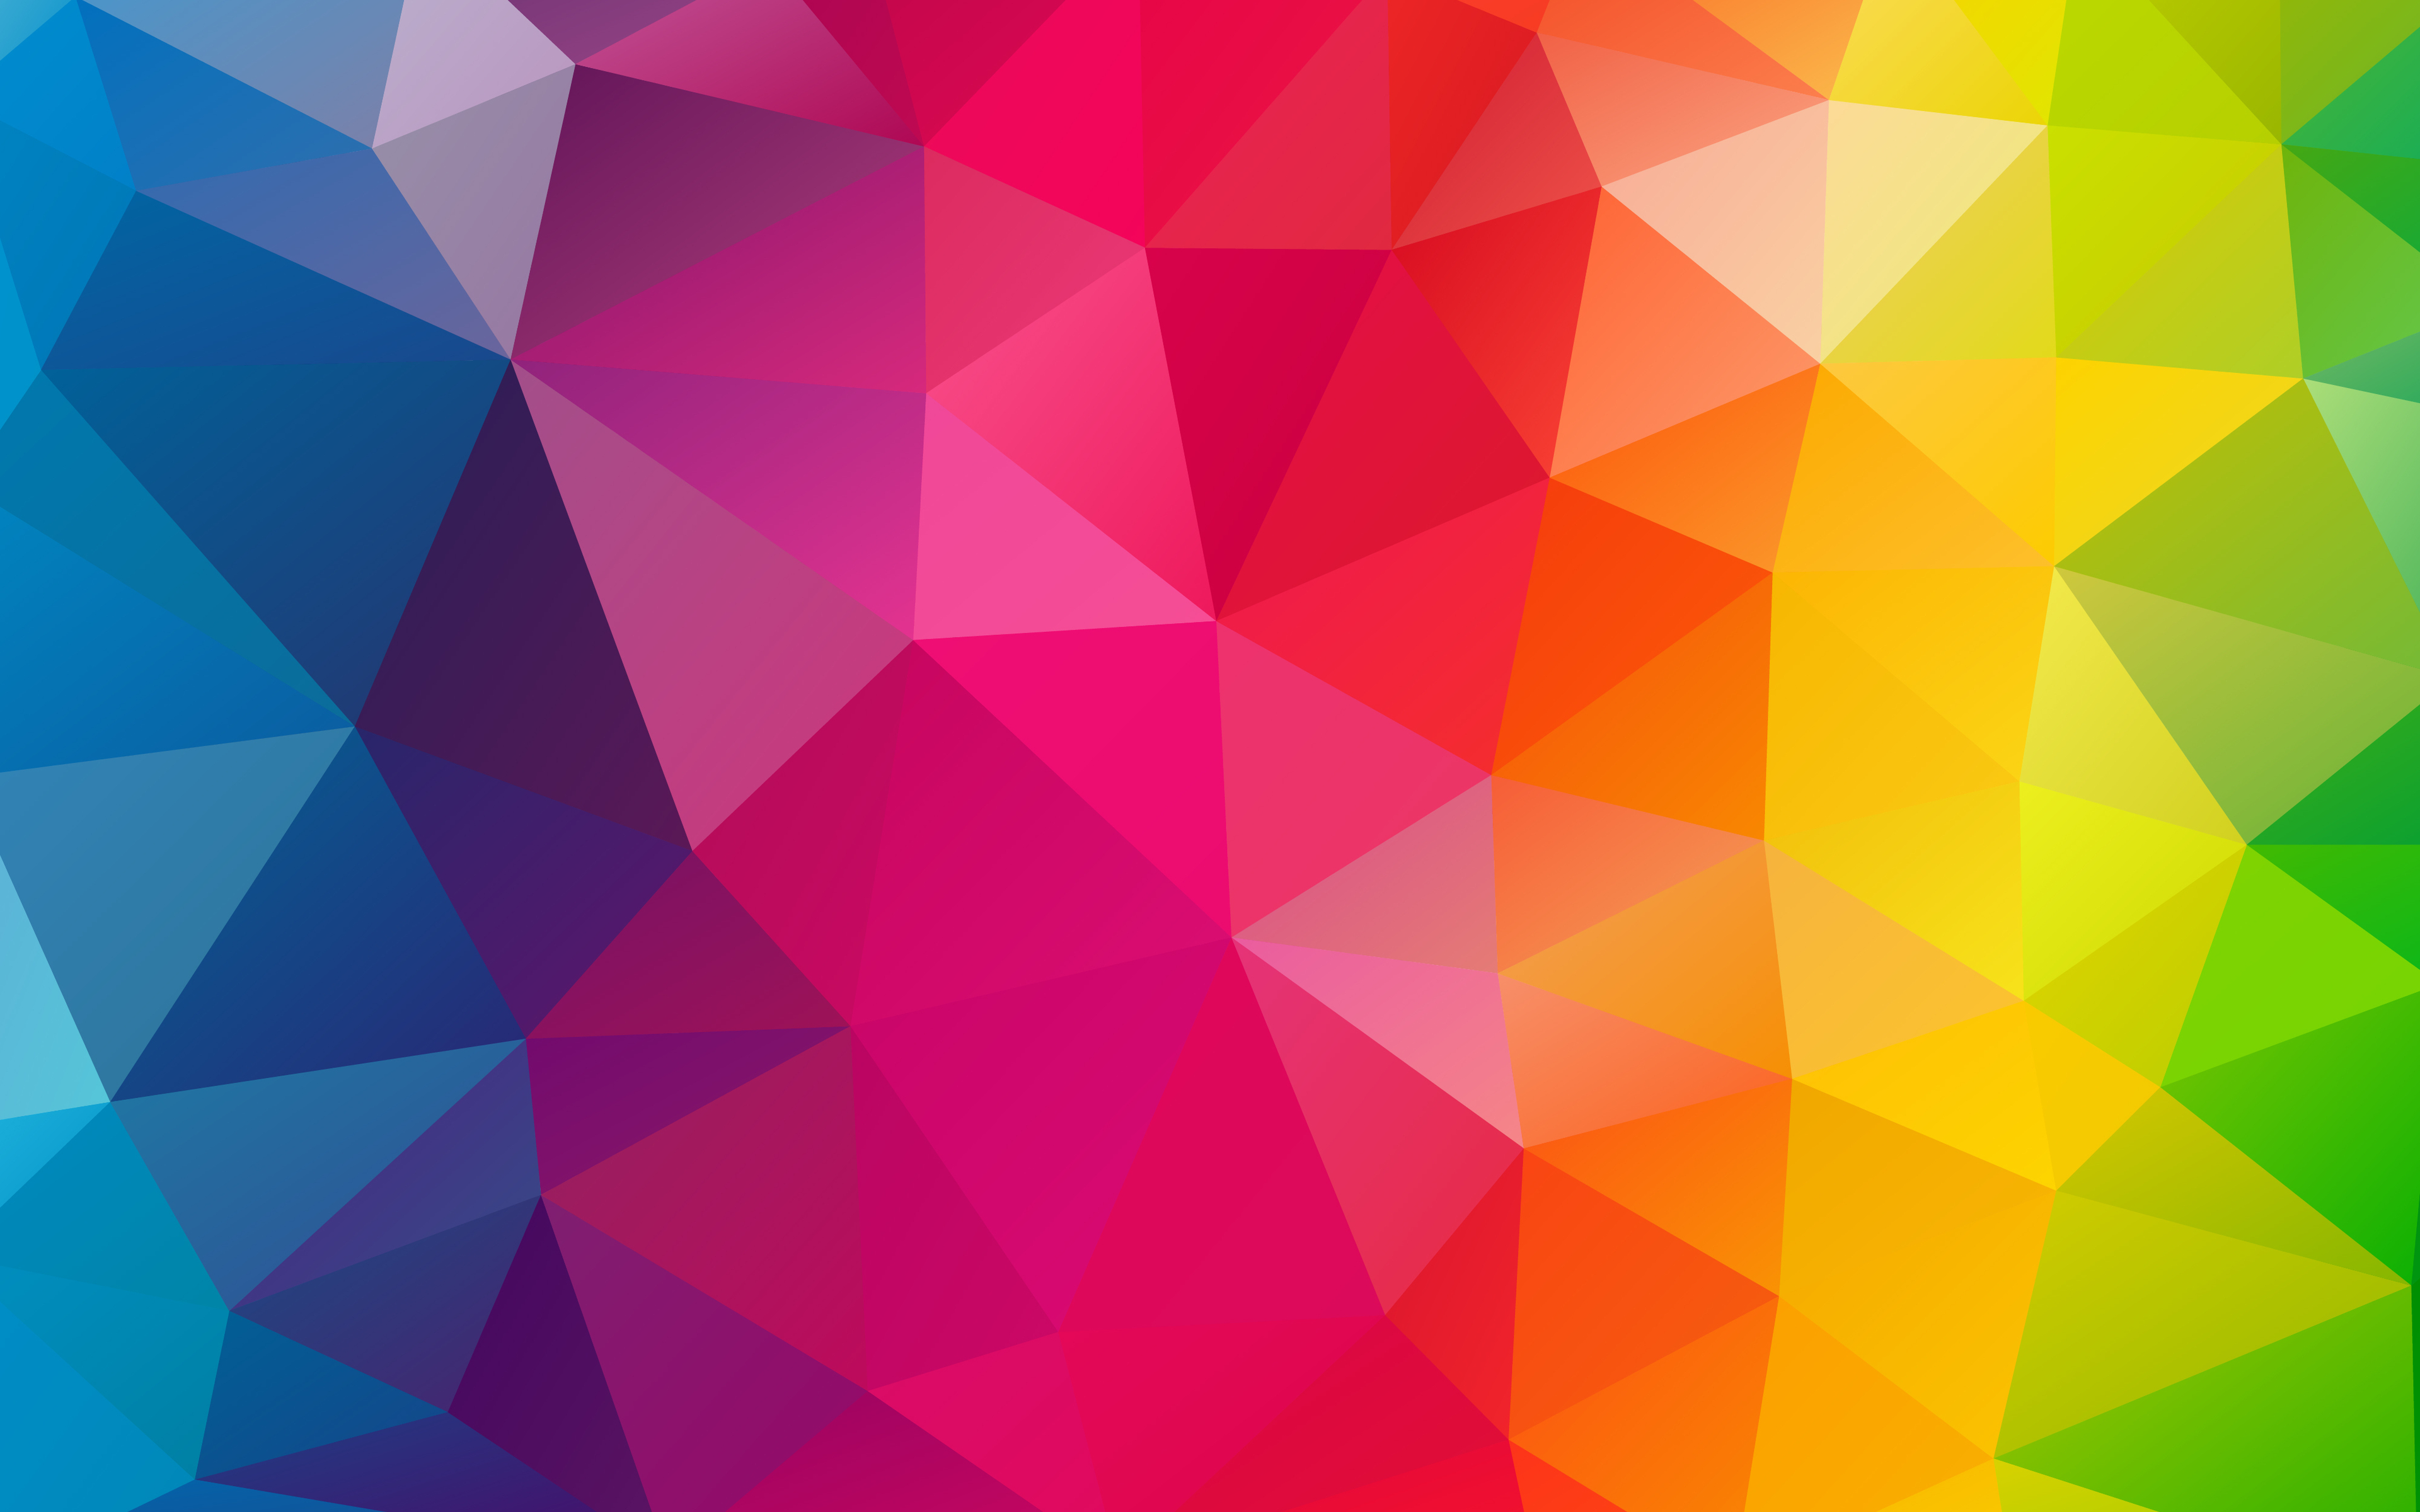 3840x2400 Triangles Colorful Background 4k Hd 4k Wallpapers Images Backgrounds Photos And